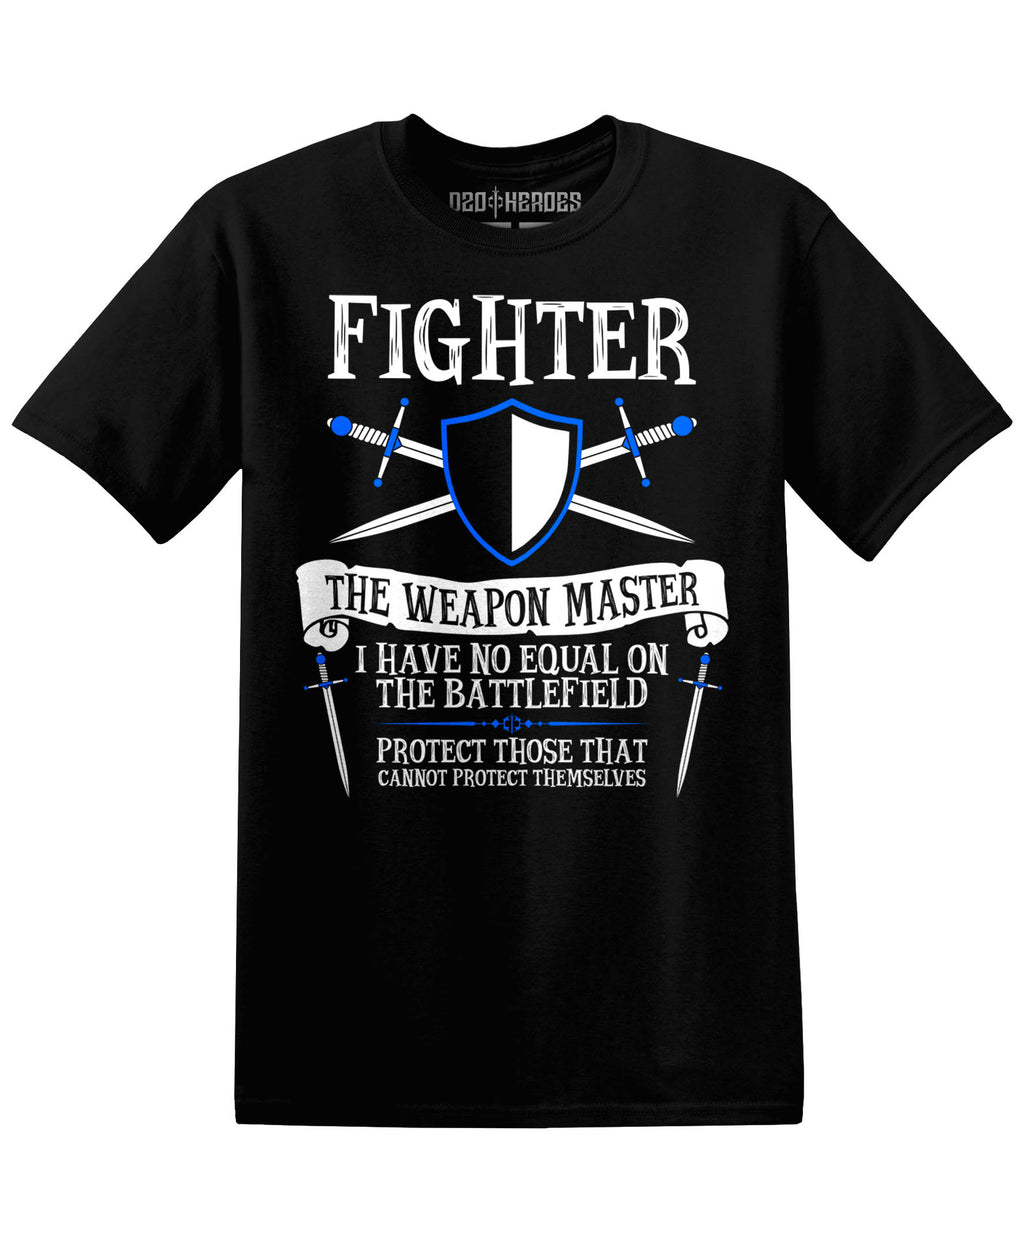 Fighter : The Weapon Master - T-Shirt - D20 Heroes / Dungeons and Dragons and Fantasy Clothing and Merchandise